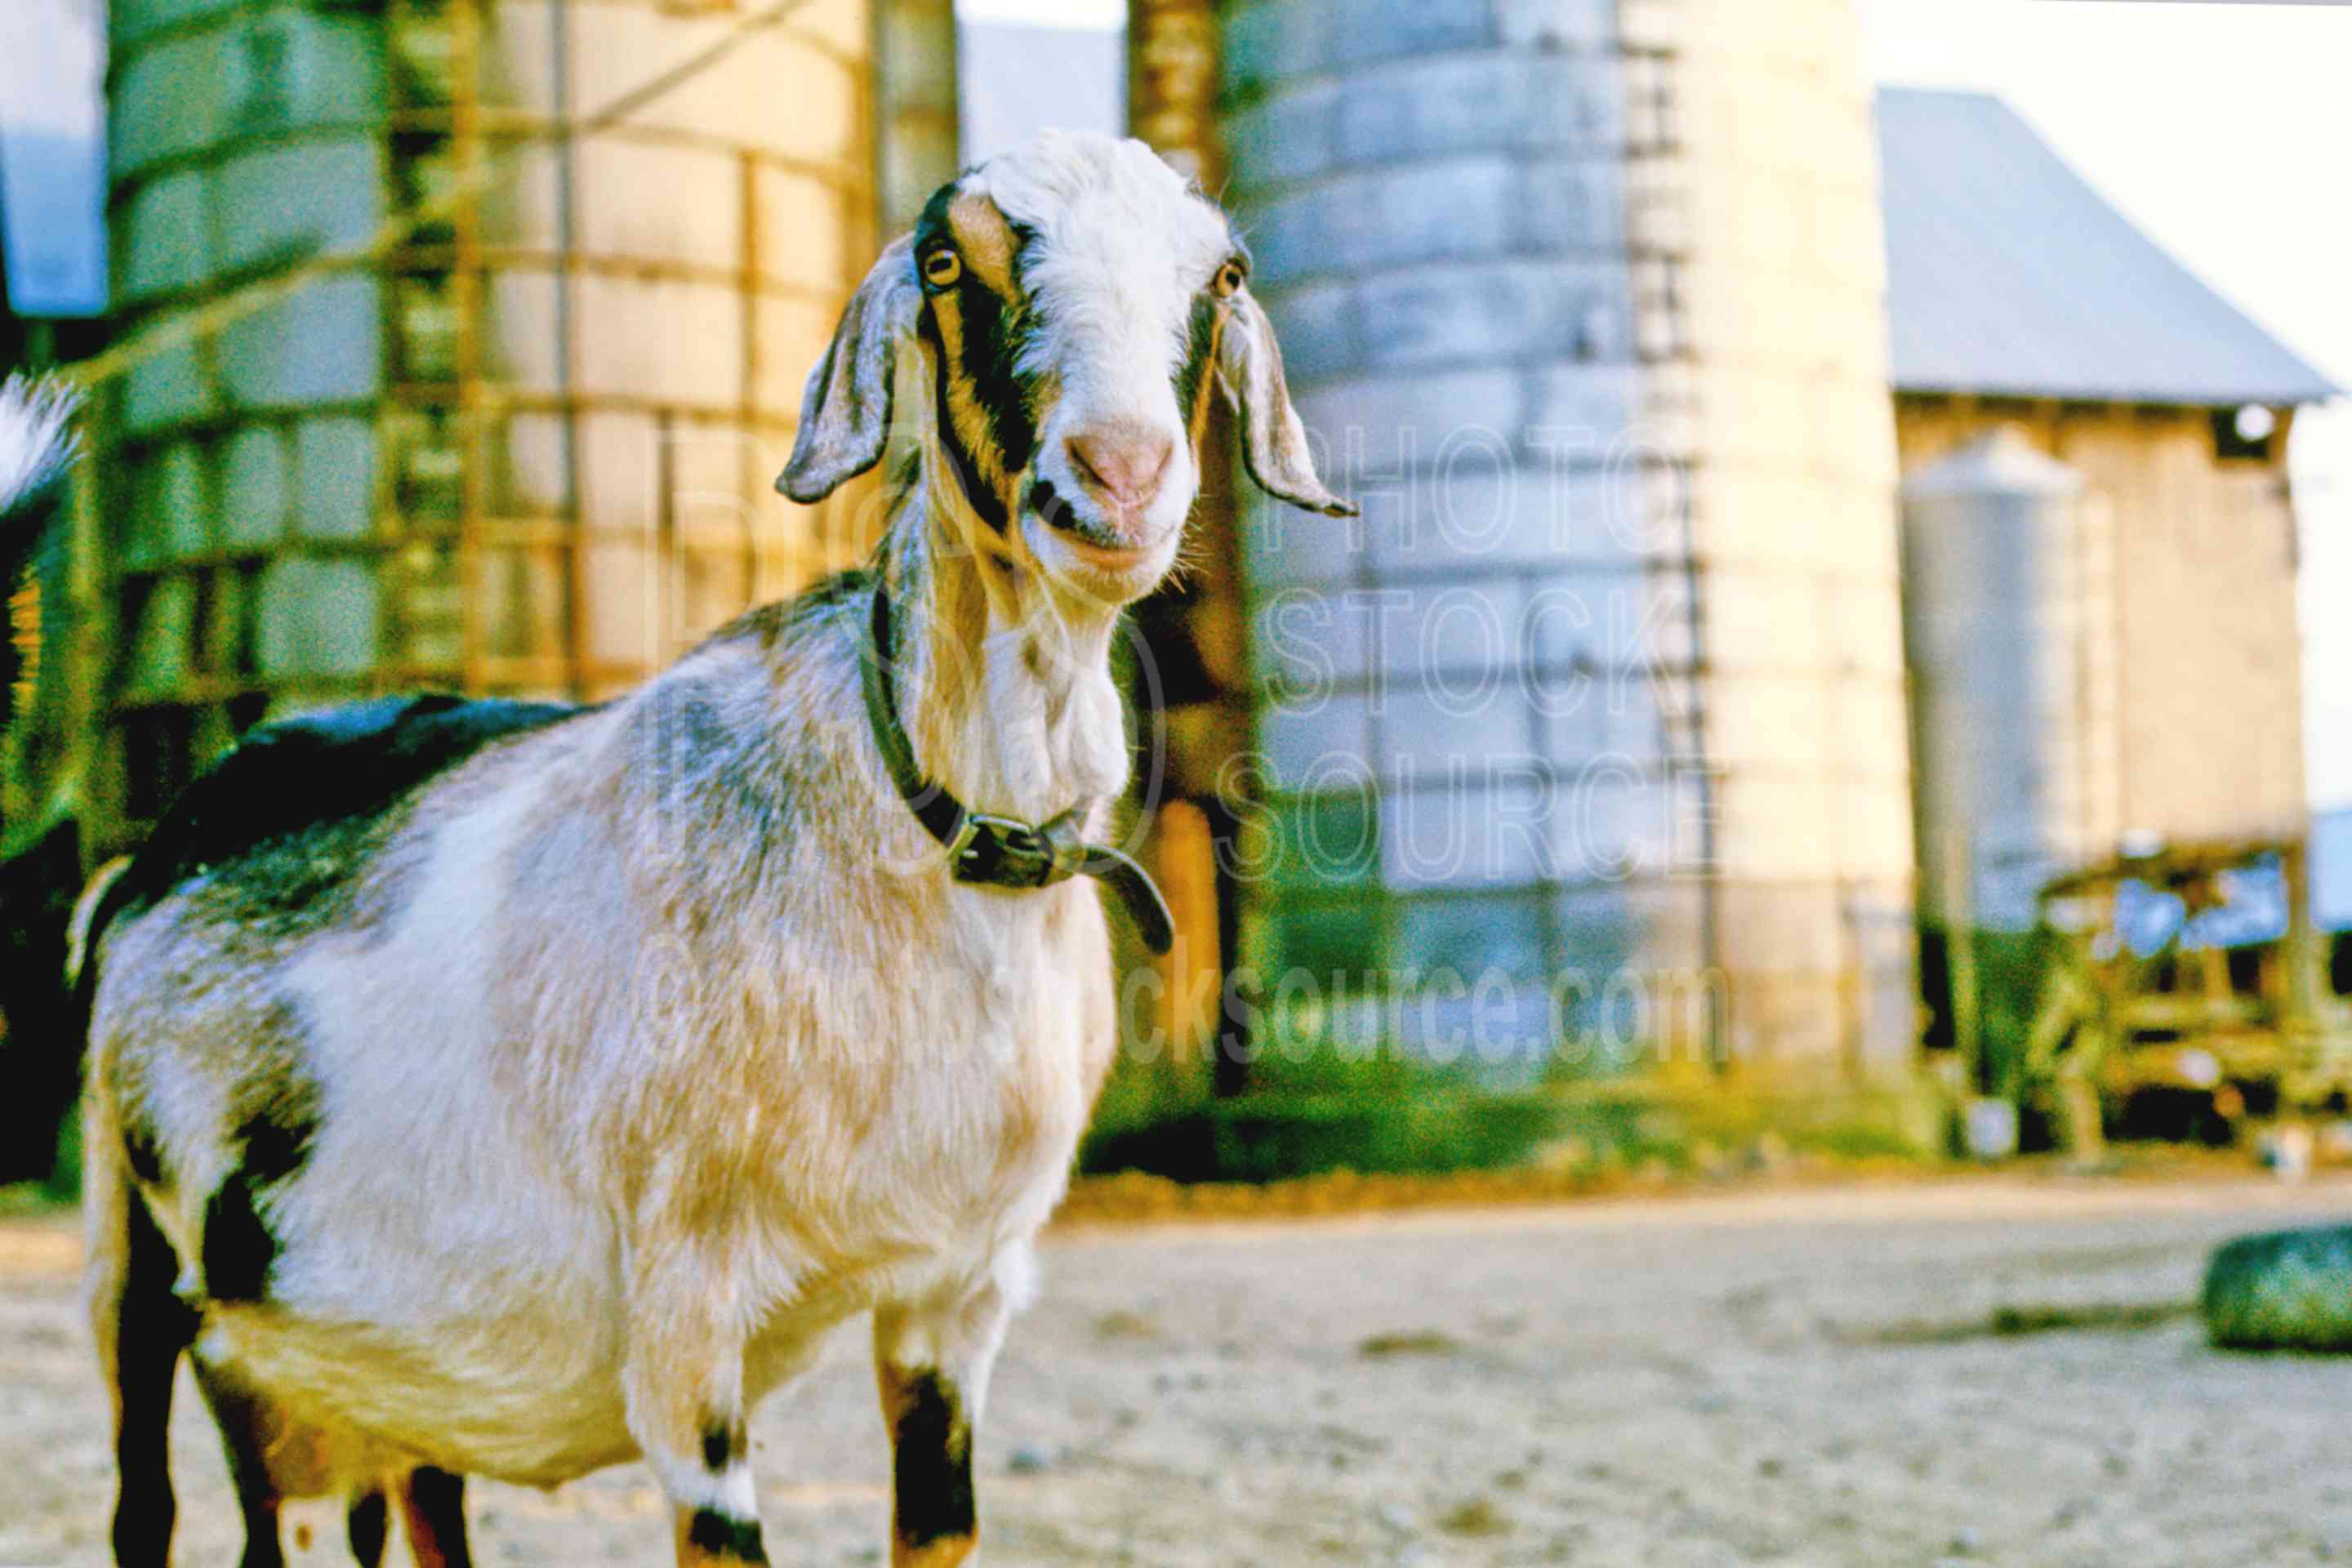 Farm Goat,goat,animal,farm animal,usas,animals,farms